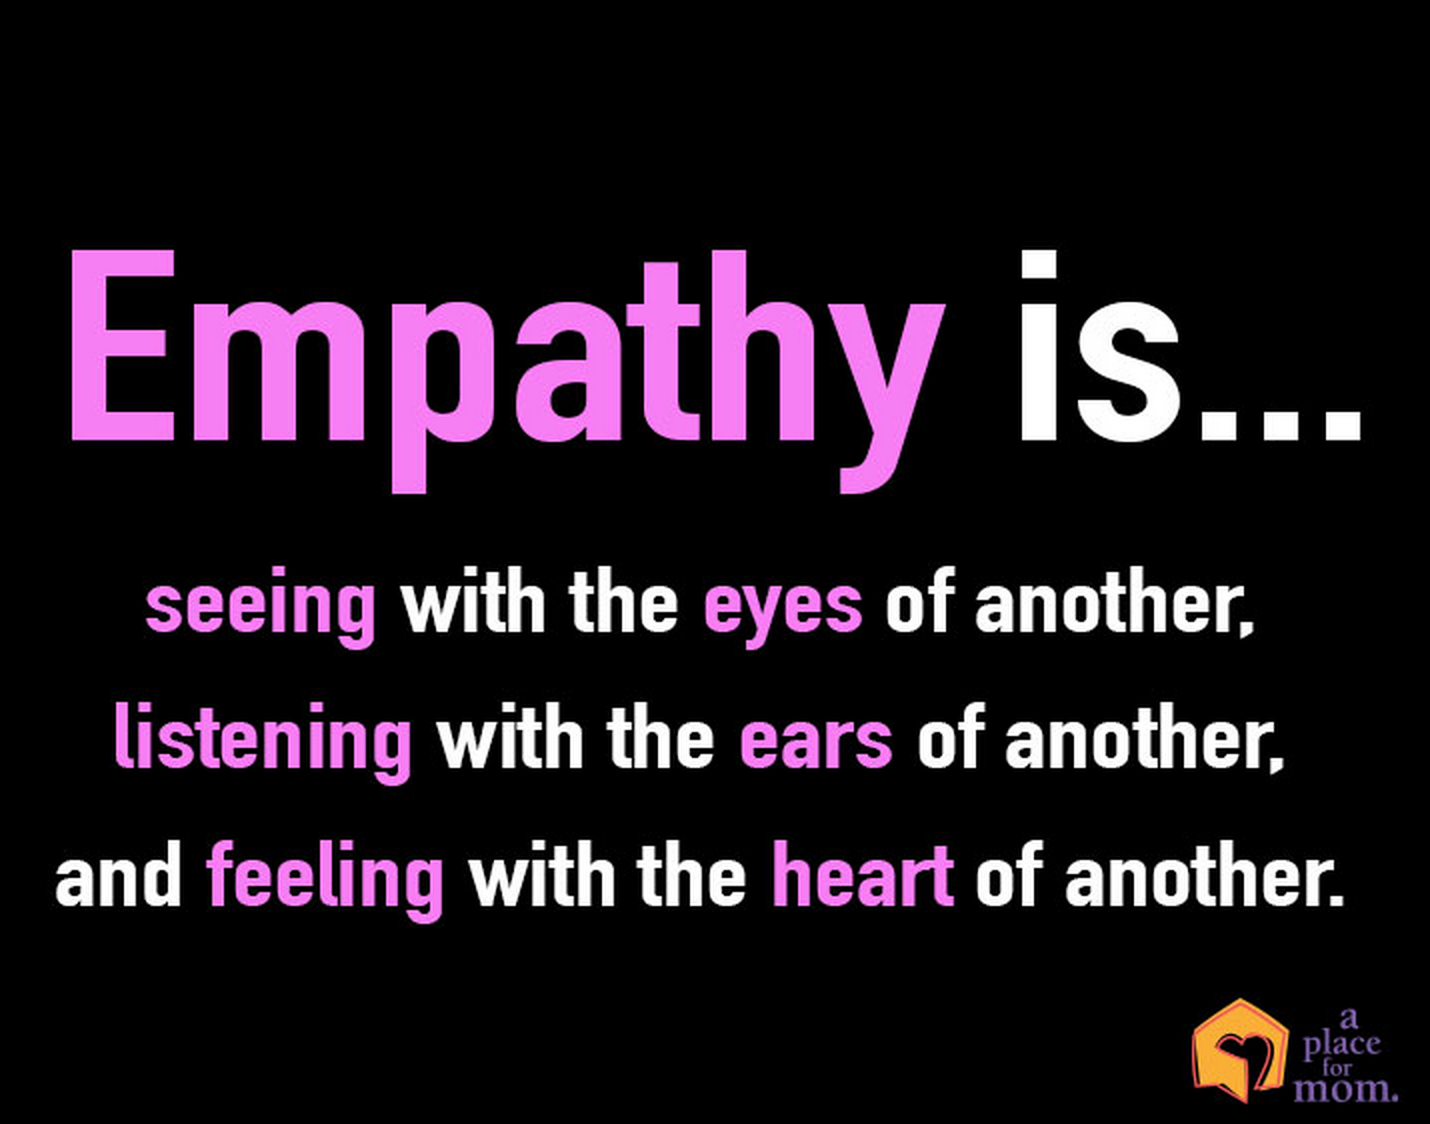 empathy essay introduction Empathy is the art of seeing the world as someone else sees it when you have  empathy, it means you can understand what a person is feeling in a given.